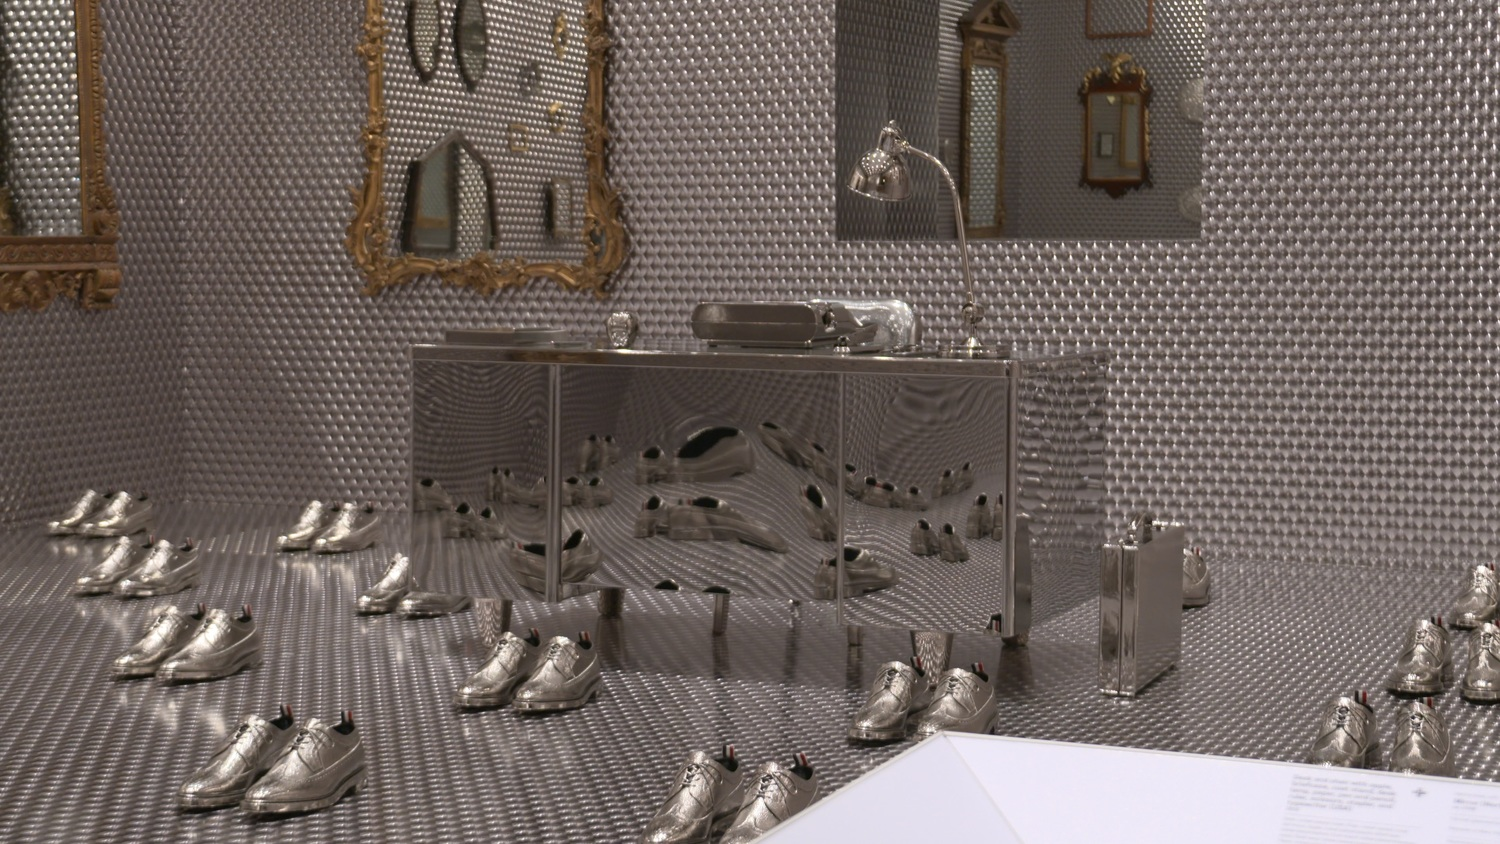 8d432509fc The Cooper Hewitt Design Museum Presents Thom Browne Selects — Videofashion